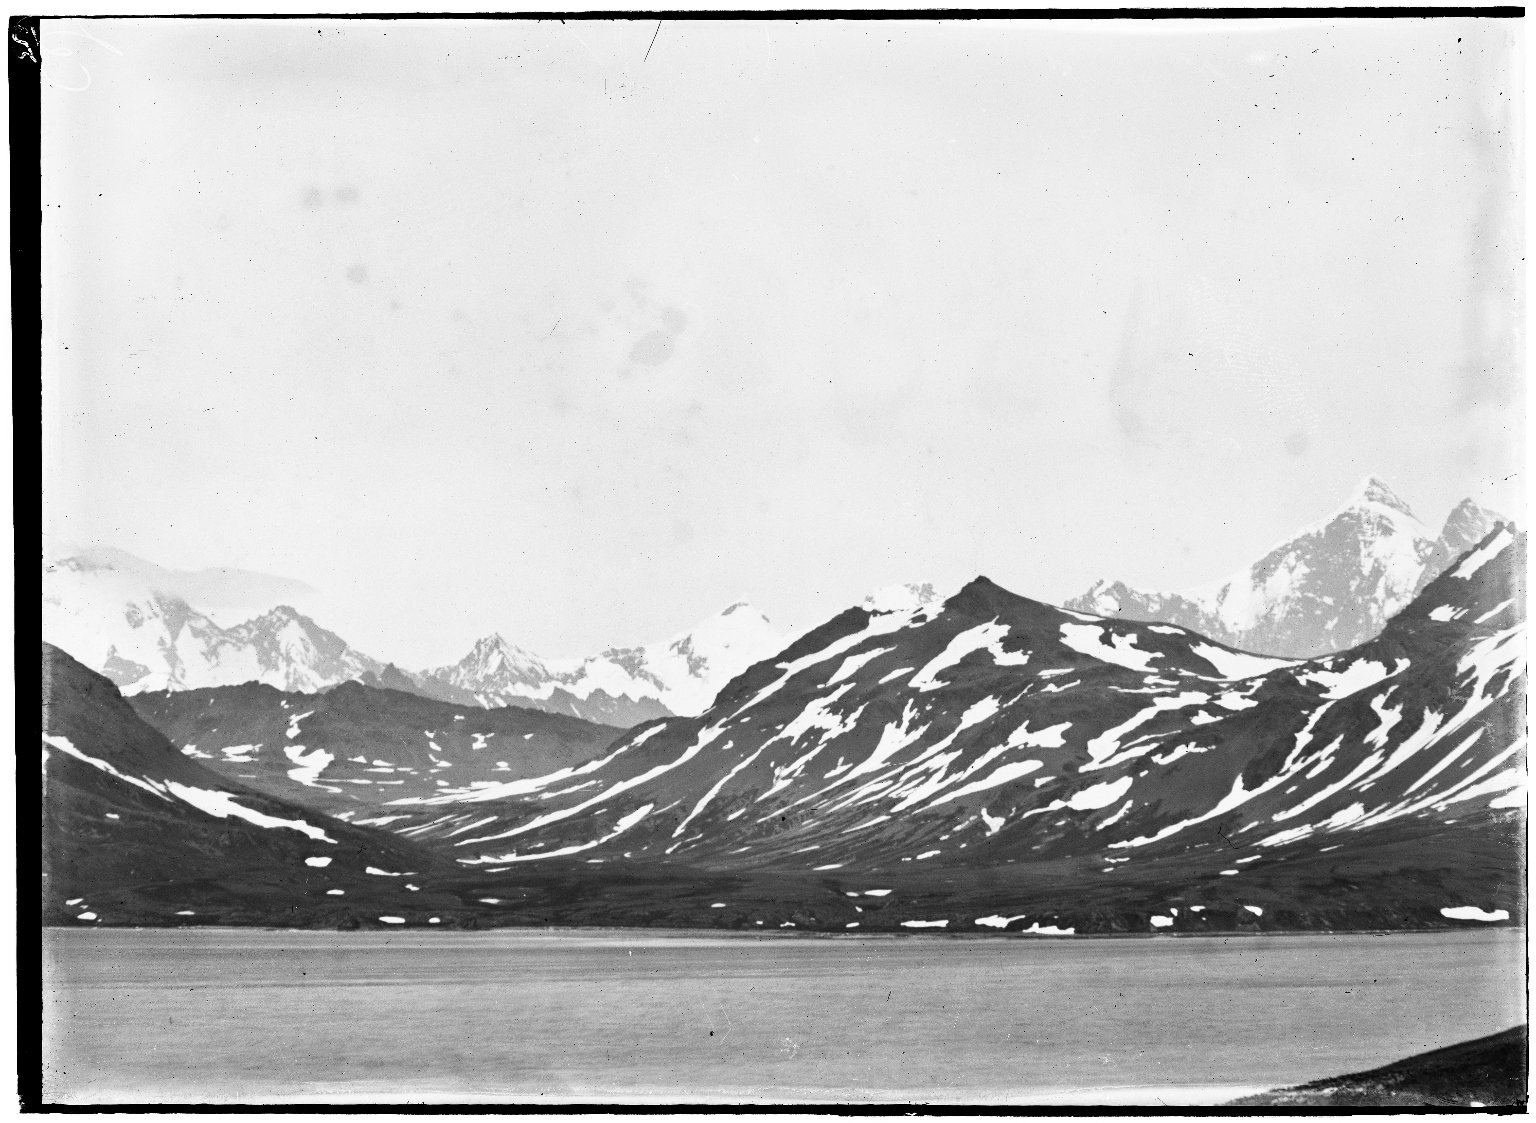 Prospecting Cruise to South Georgia and Antartica, 1913-14, P.005